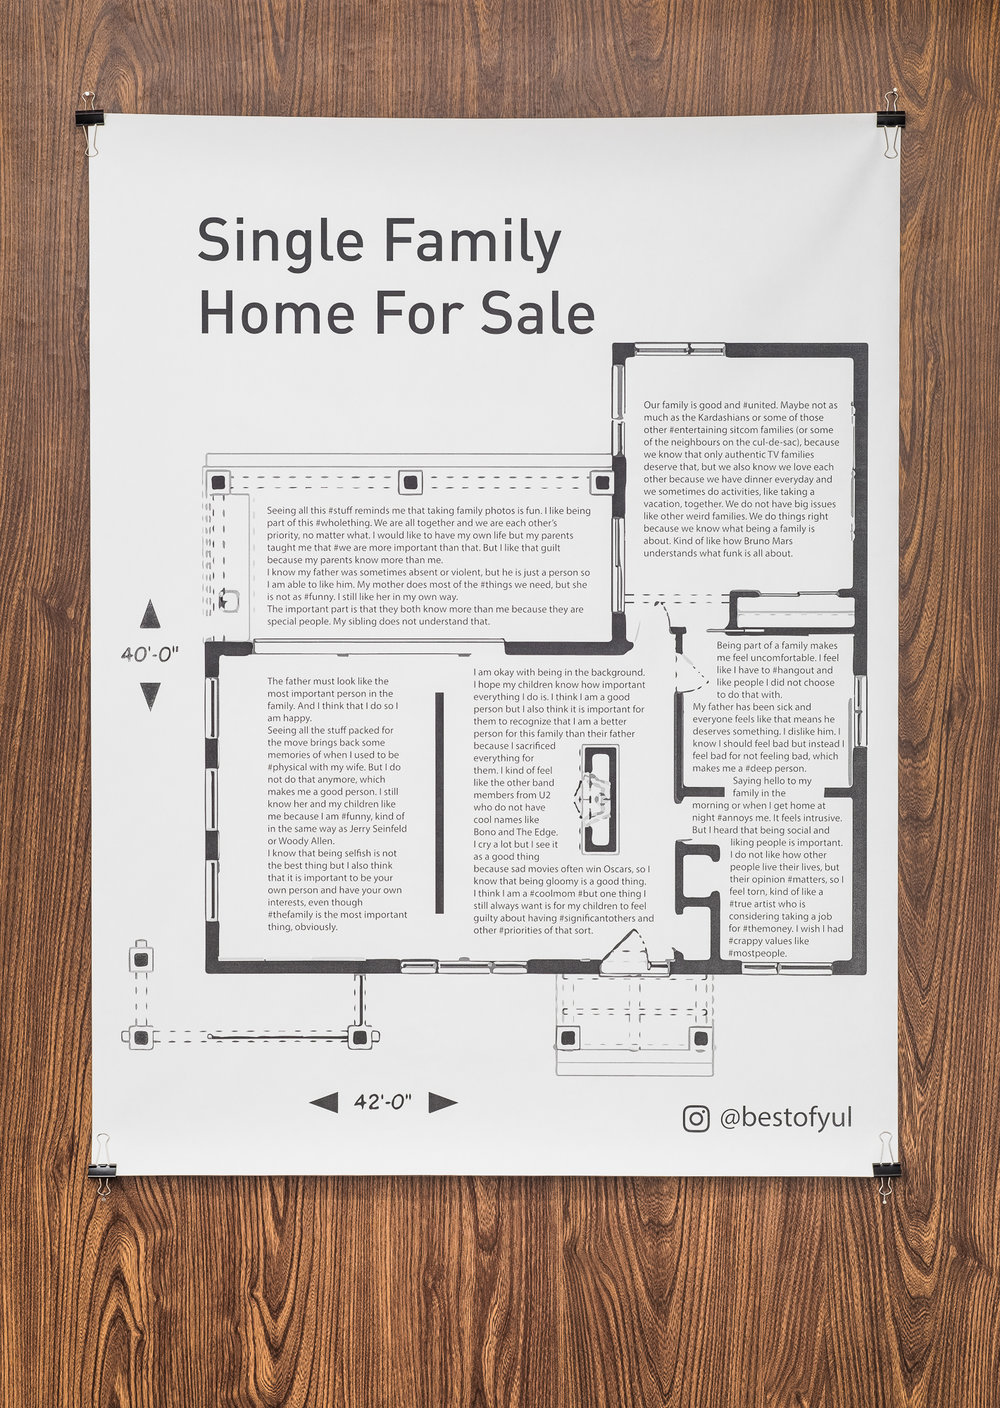 Dimitri Velasquez. Single Family Home For Sale, 2018. Print on bond paper (available in PDF) [Photo by Morgane Clément-Gagnon]